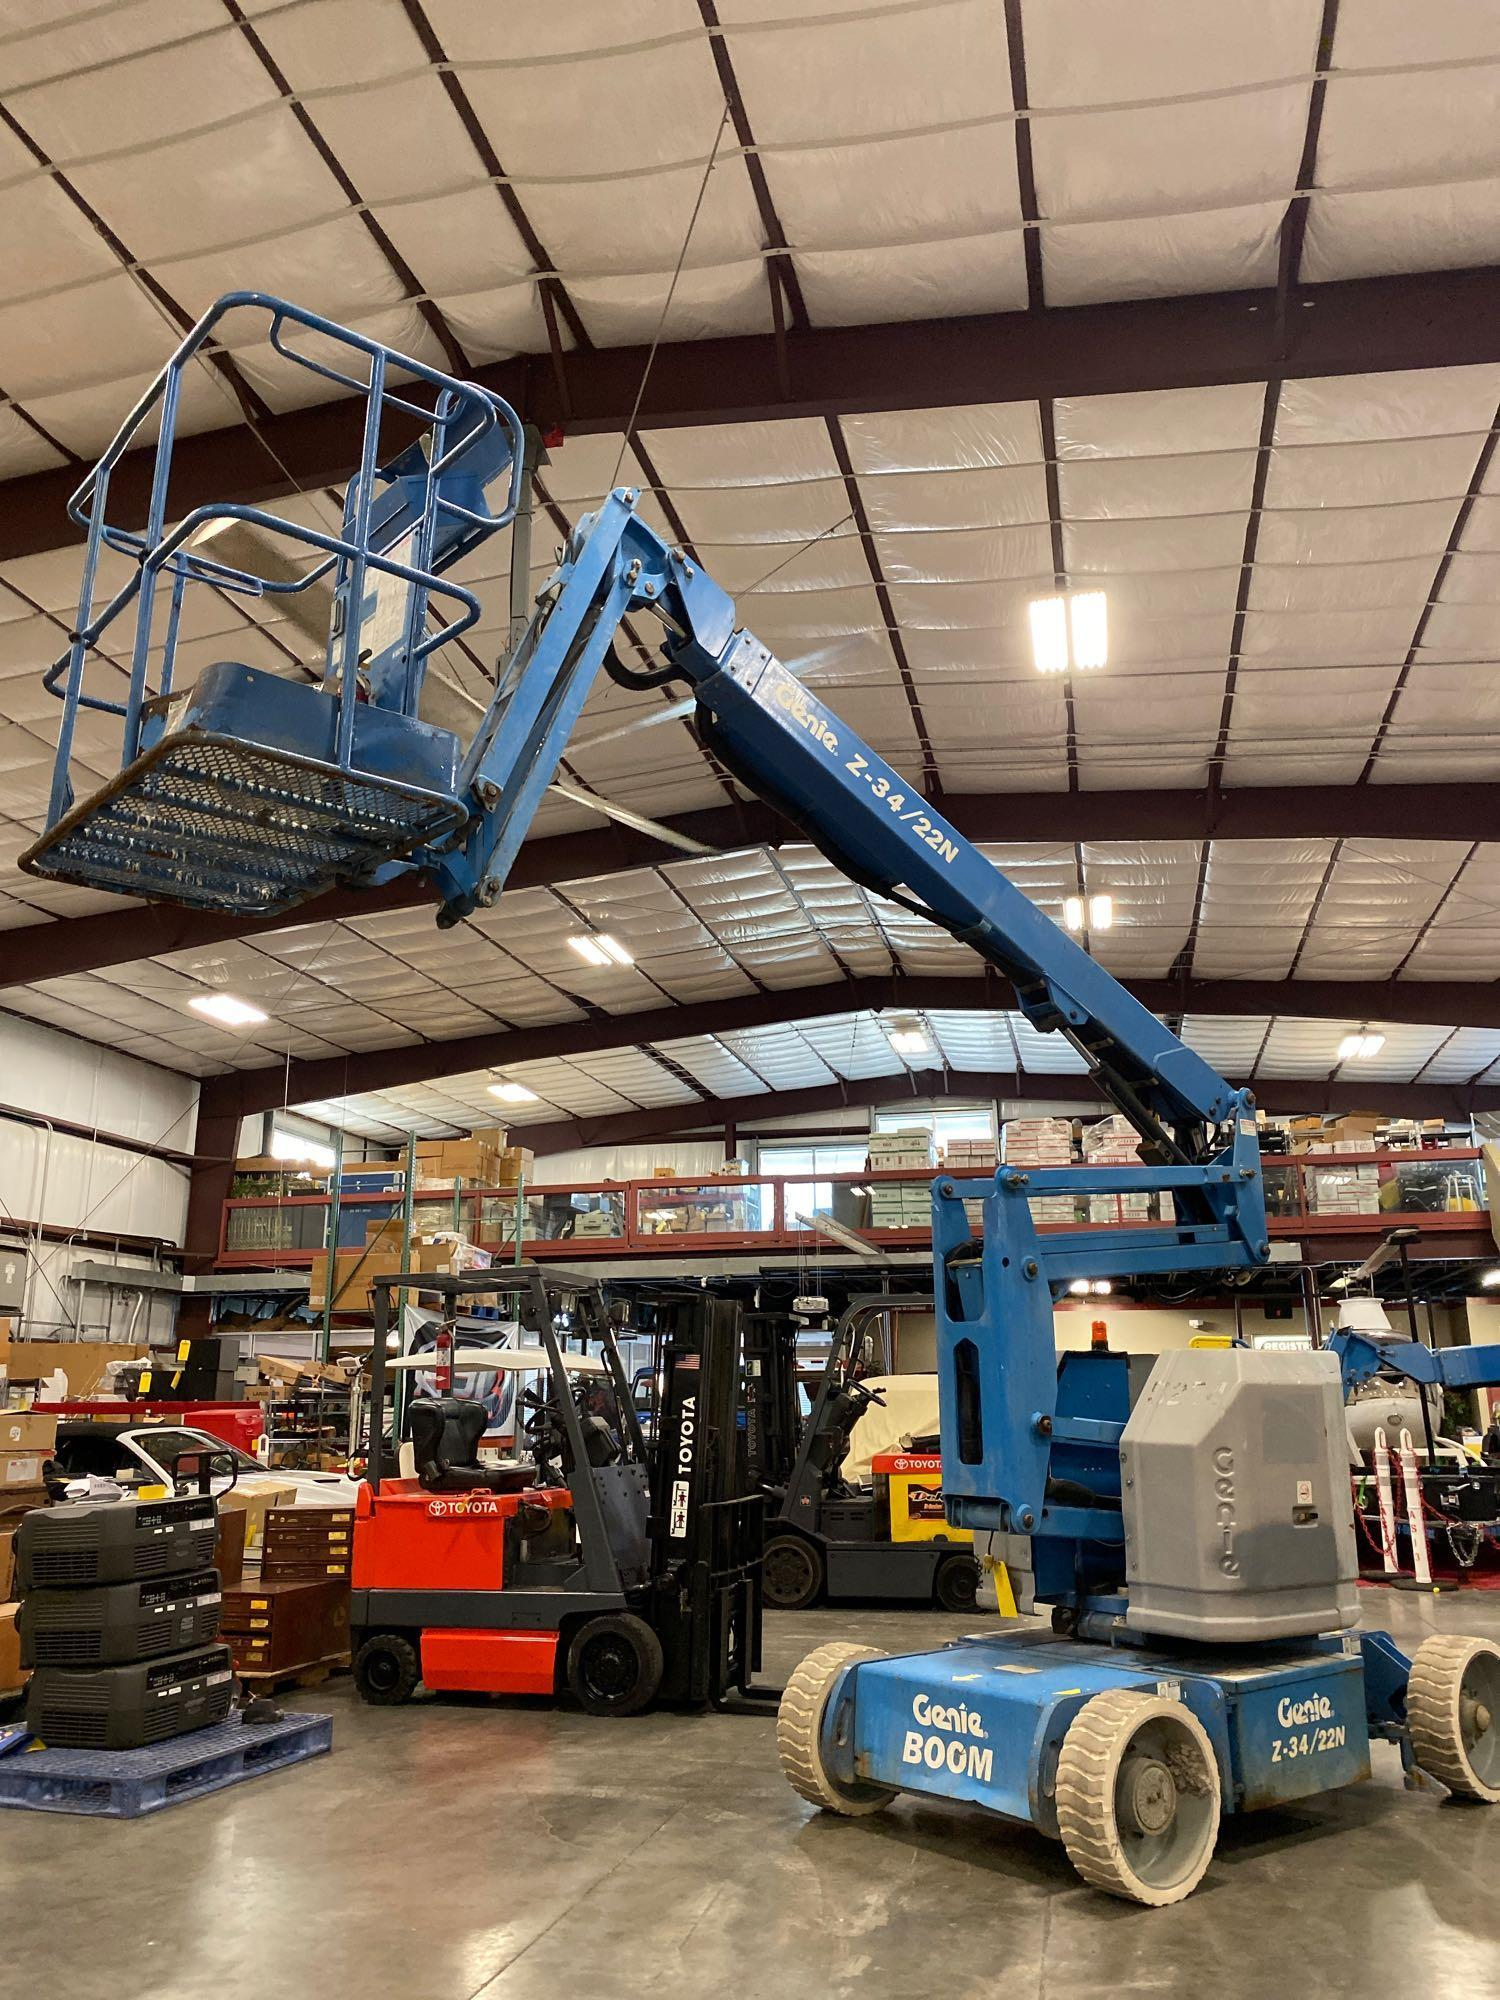 Lot 67 - GENIE Z-34/22N ARTICULATING ELECTRIC BOOM LIFT, NON MARKING TIRES, 34' PLATFORM HEIGHT, BUILT IN BAT